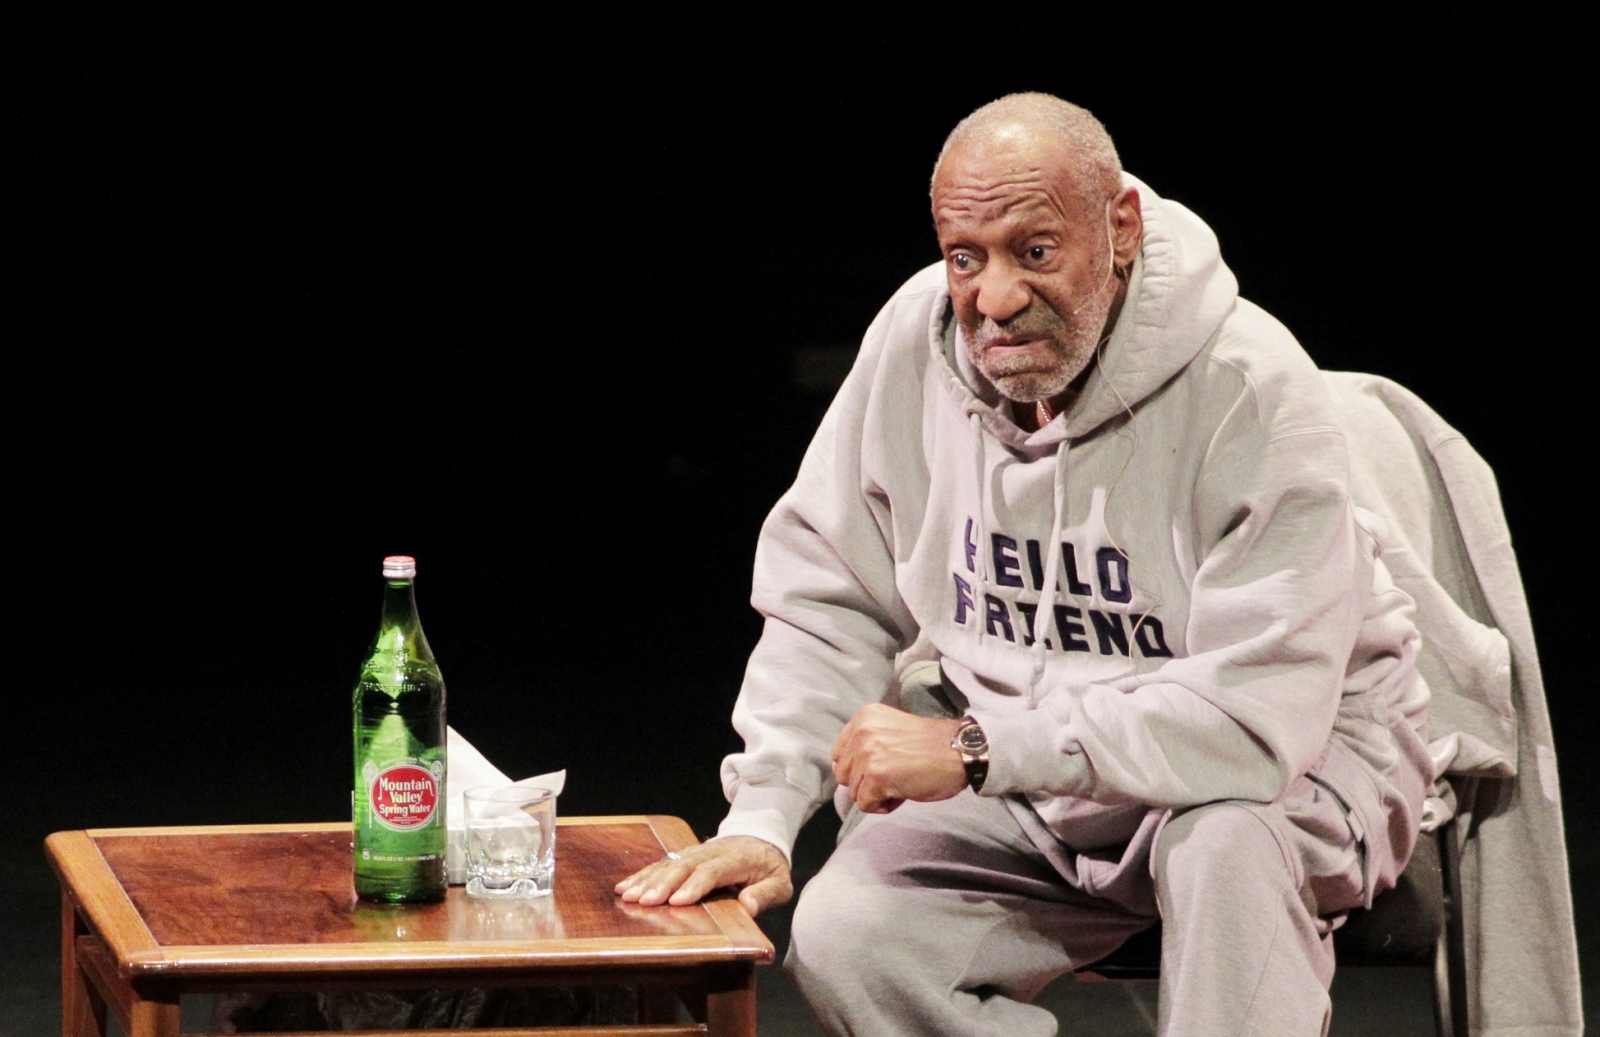 Two more women accuse Bill Cosby of drugging them